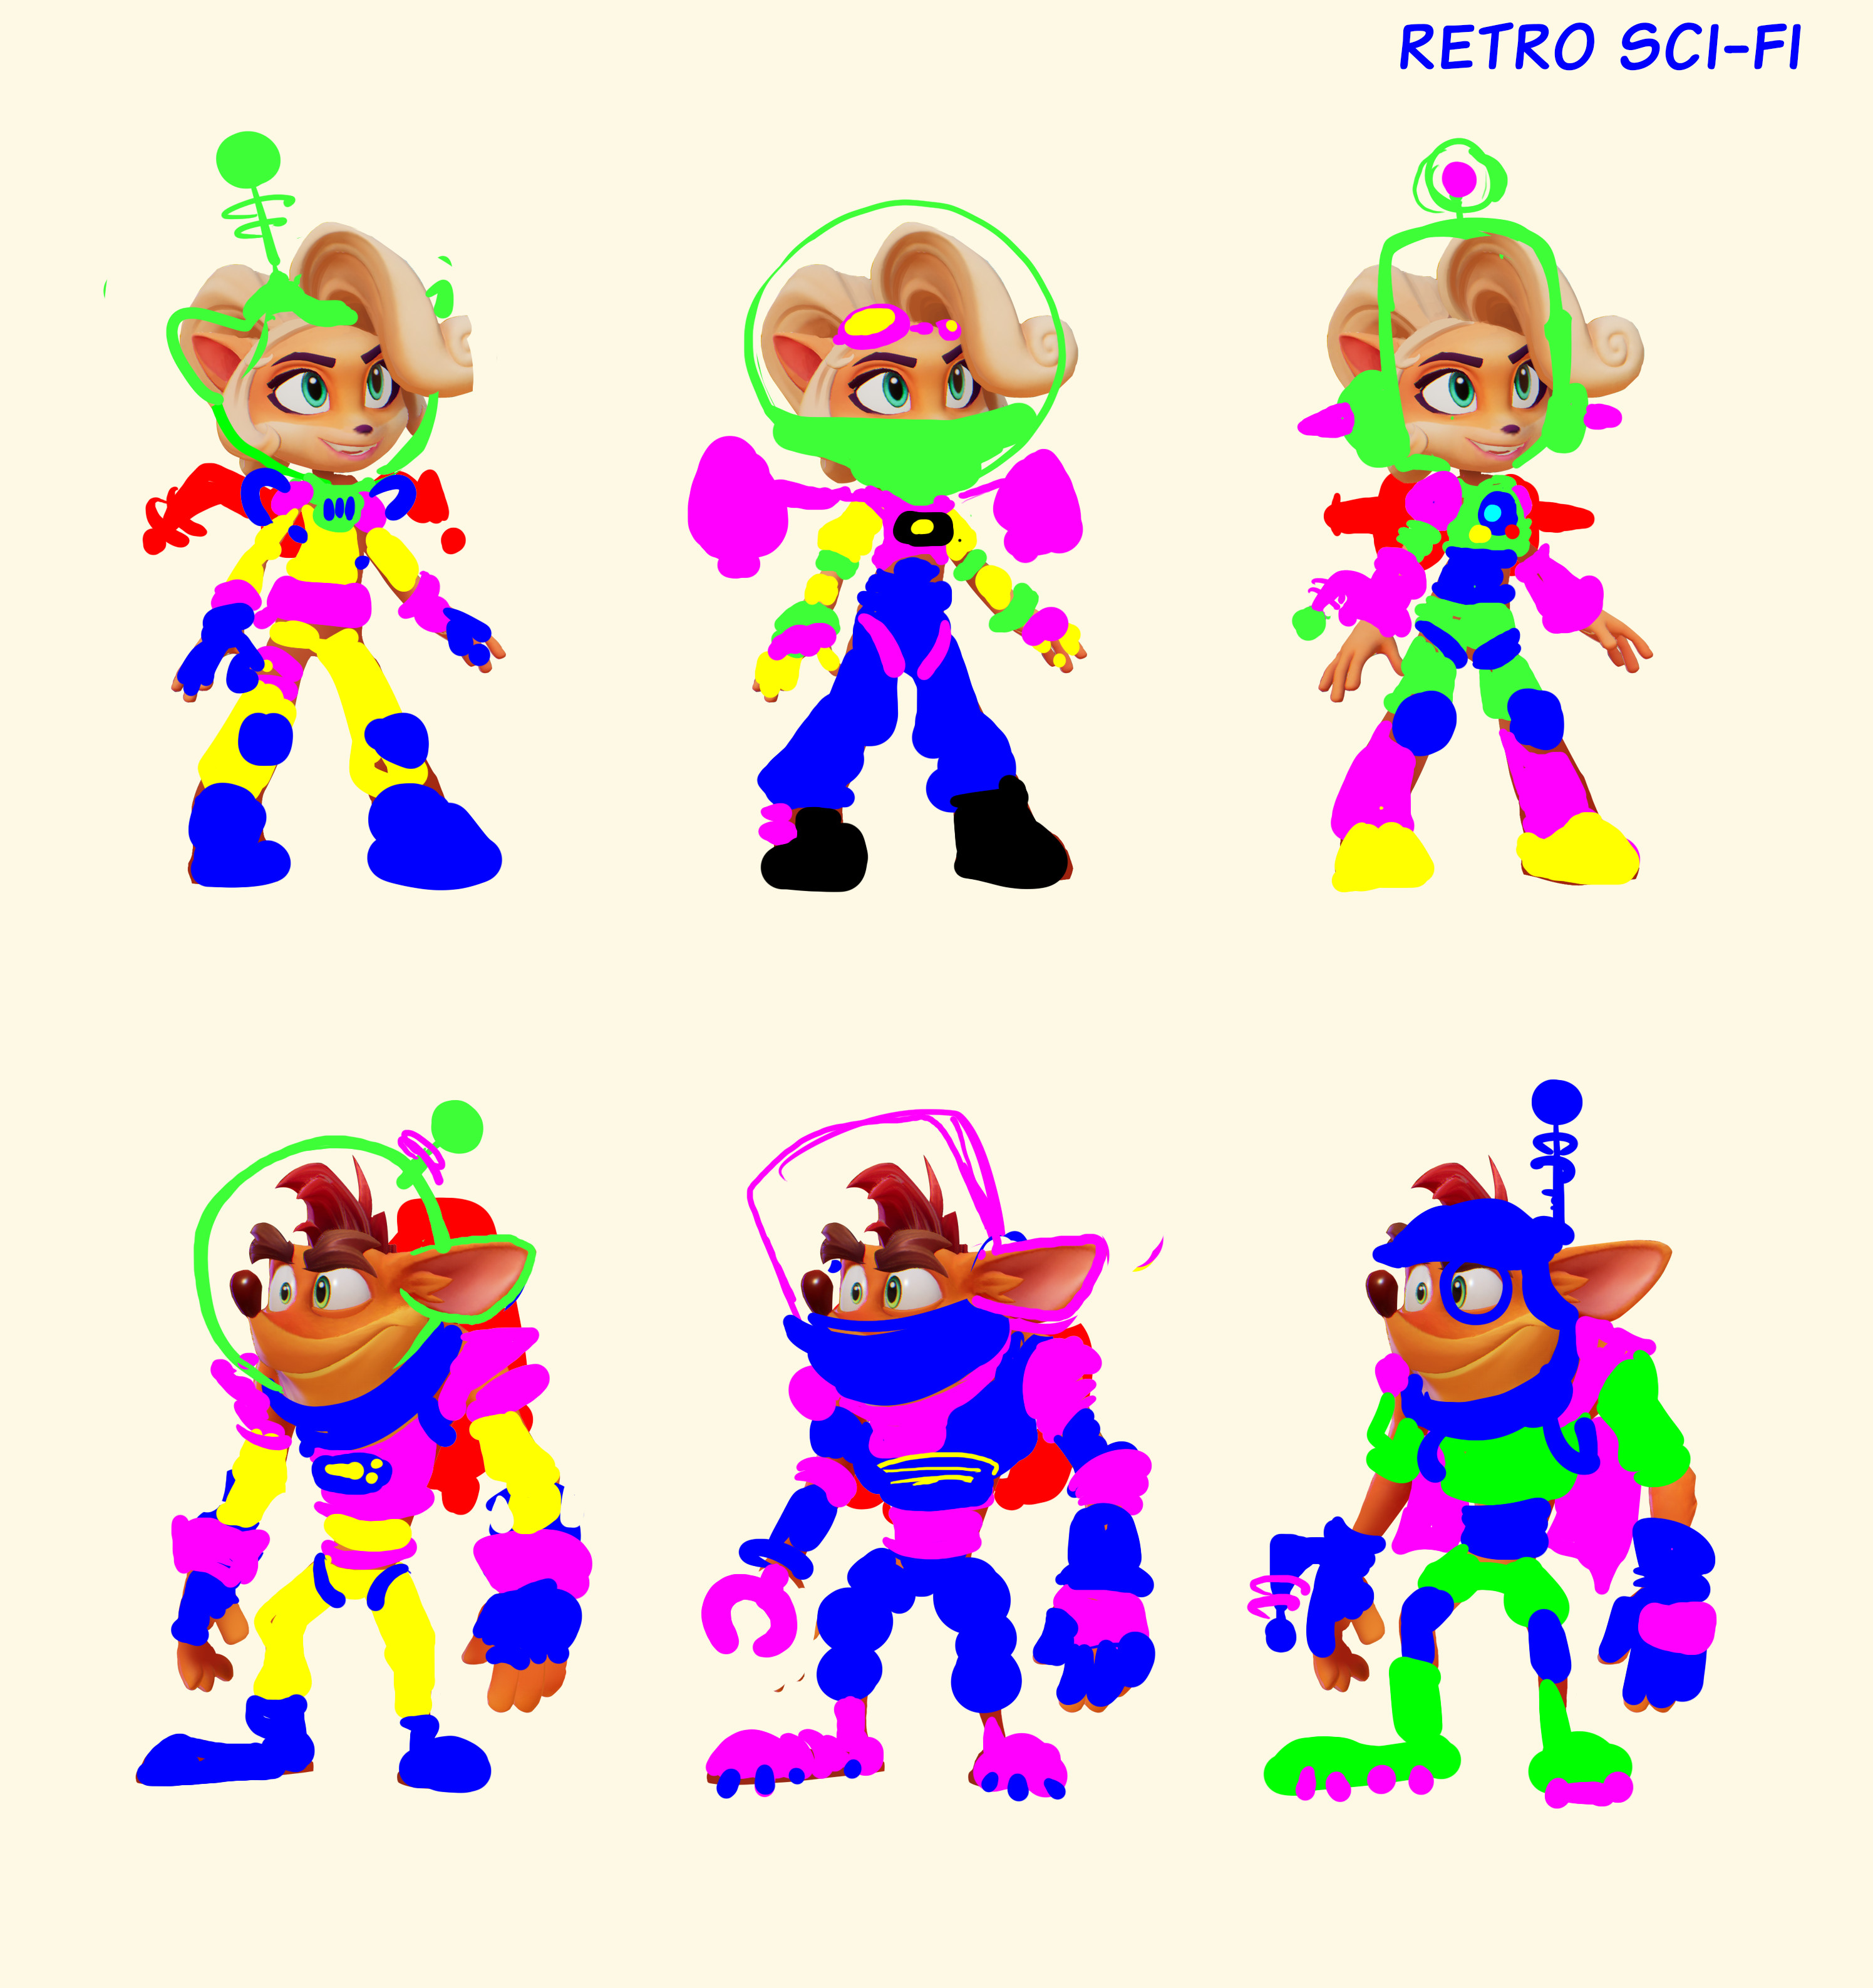 Neon Blobbys for show. Never proceeded with Crash versions.